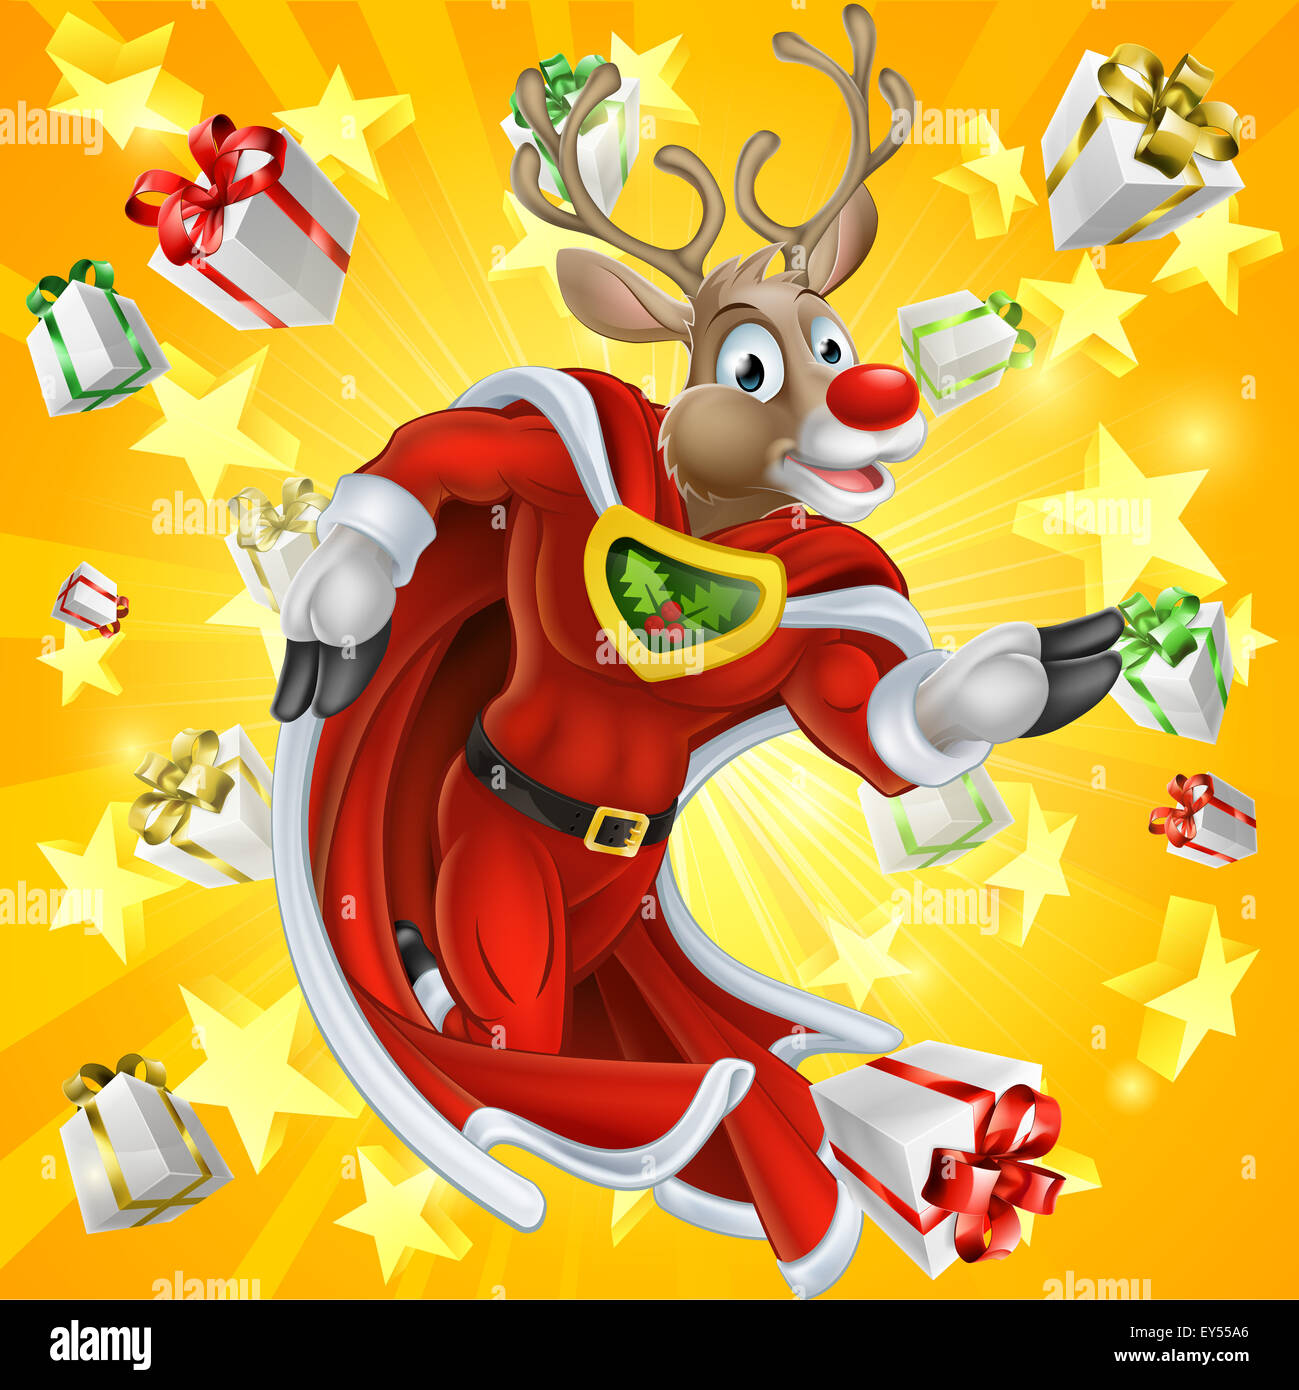 A cute cartoon superhero Christmas Reindeer character running with stars and Chrismas gifts or presents in the background - Stock Image